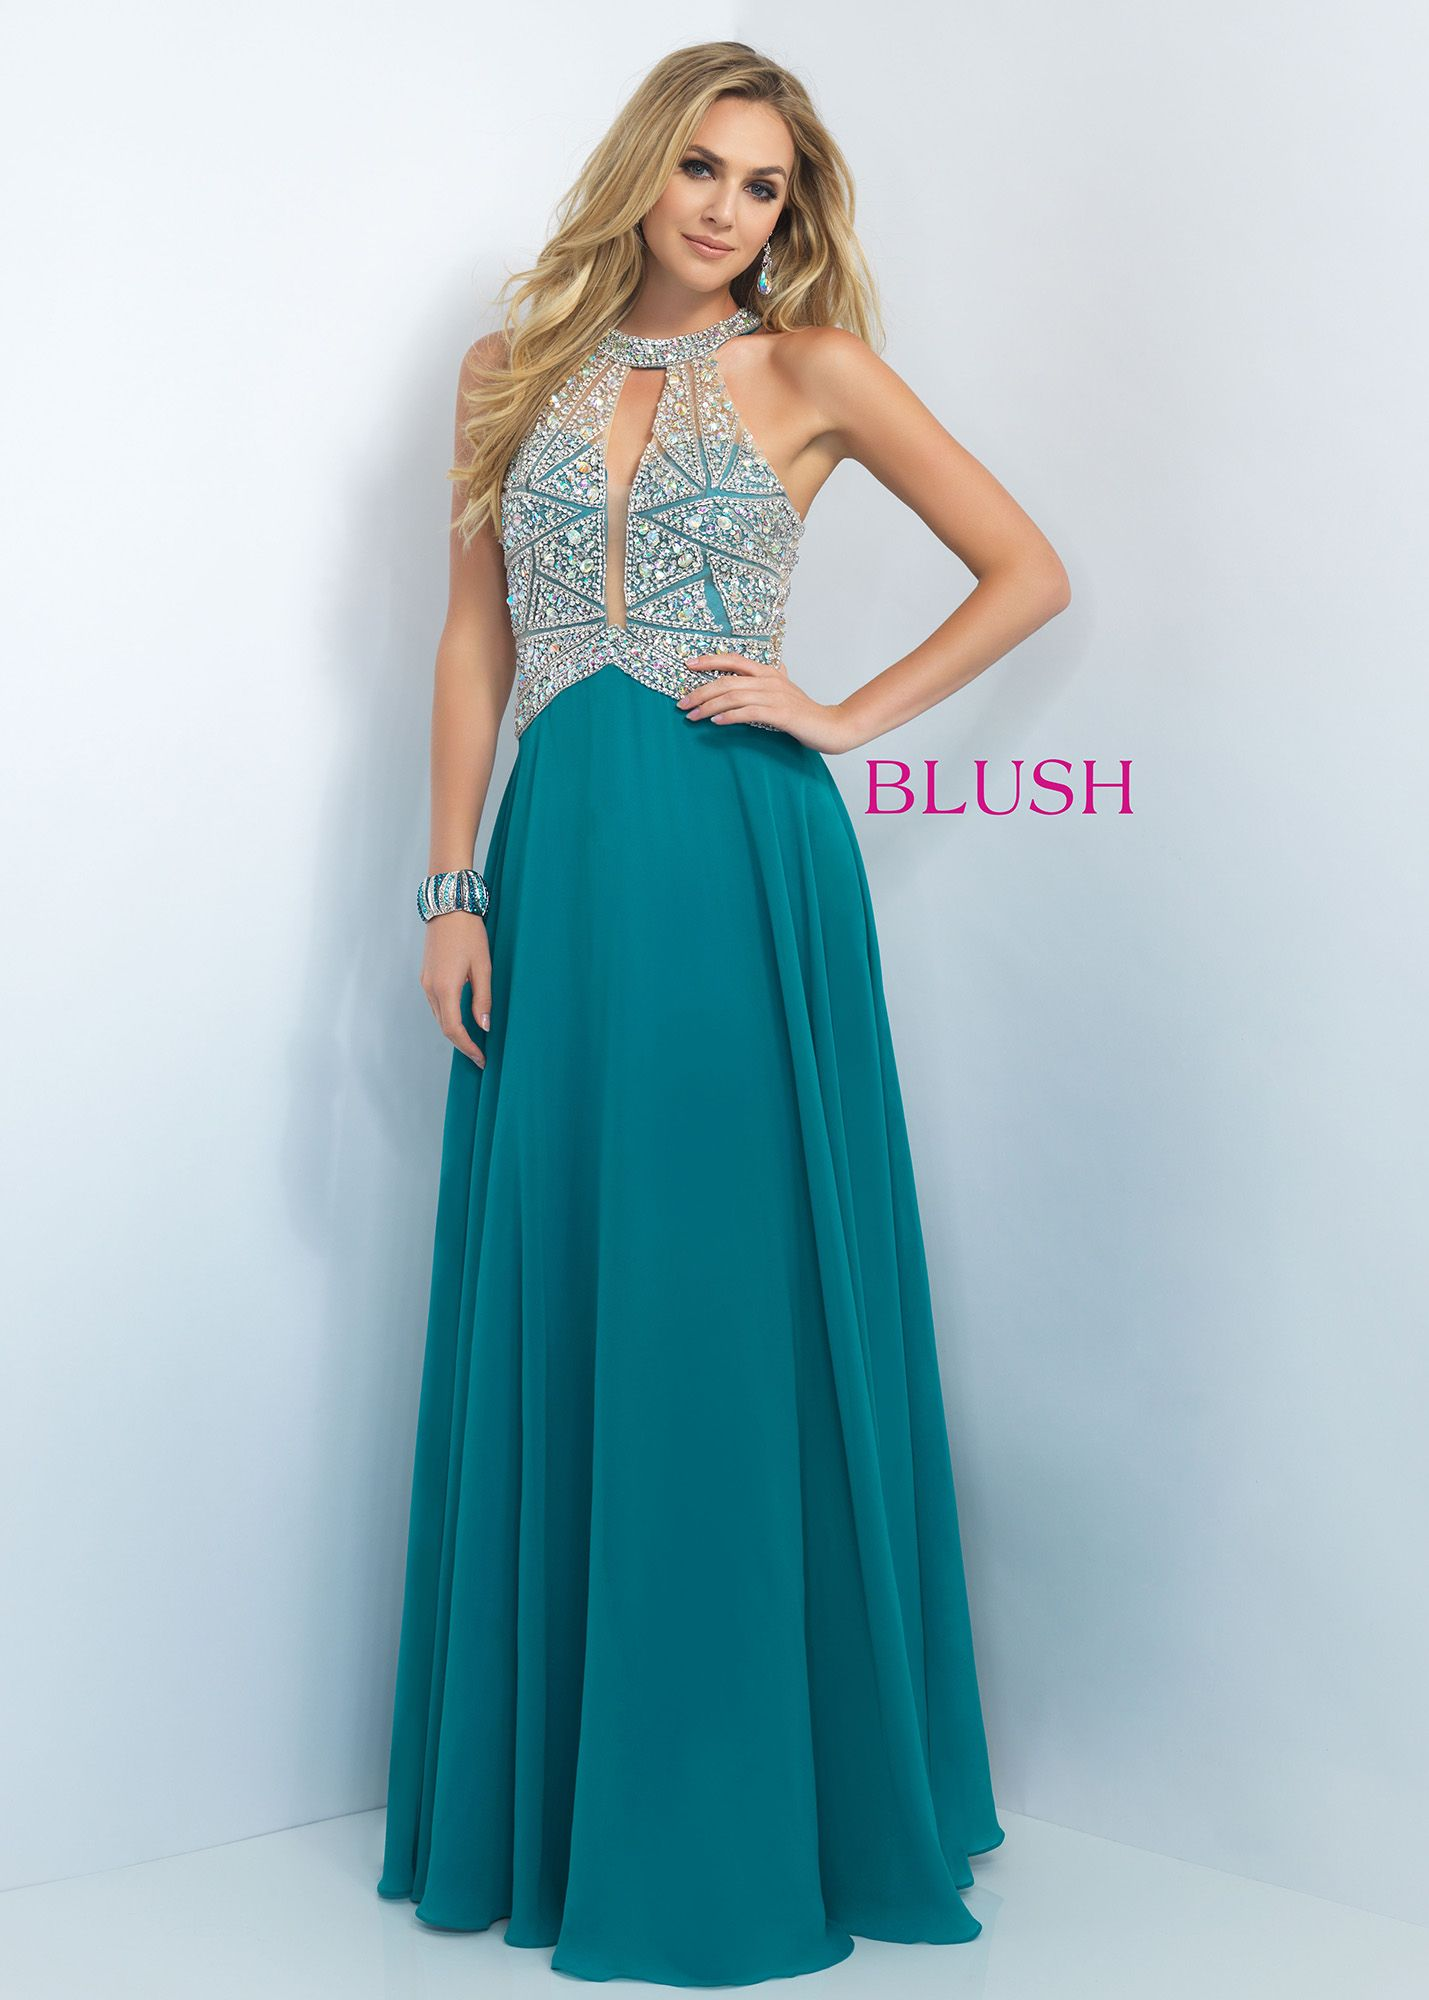 11085 blush | Cheap Prom Dresses 2016 Sale, Juniors Graduation ...